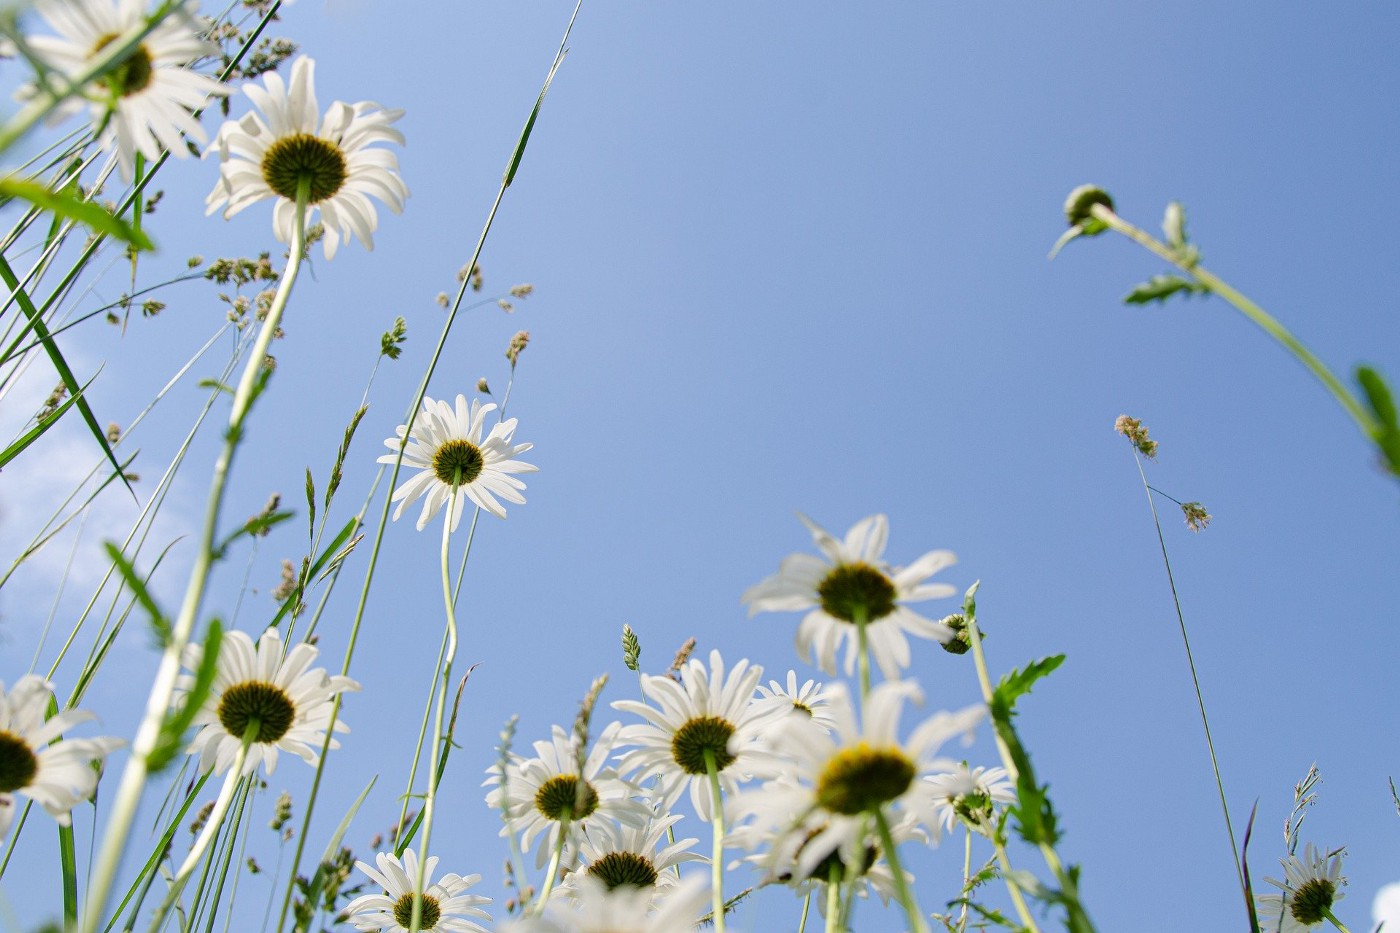 Picture of daisies against a blue sky.